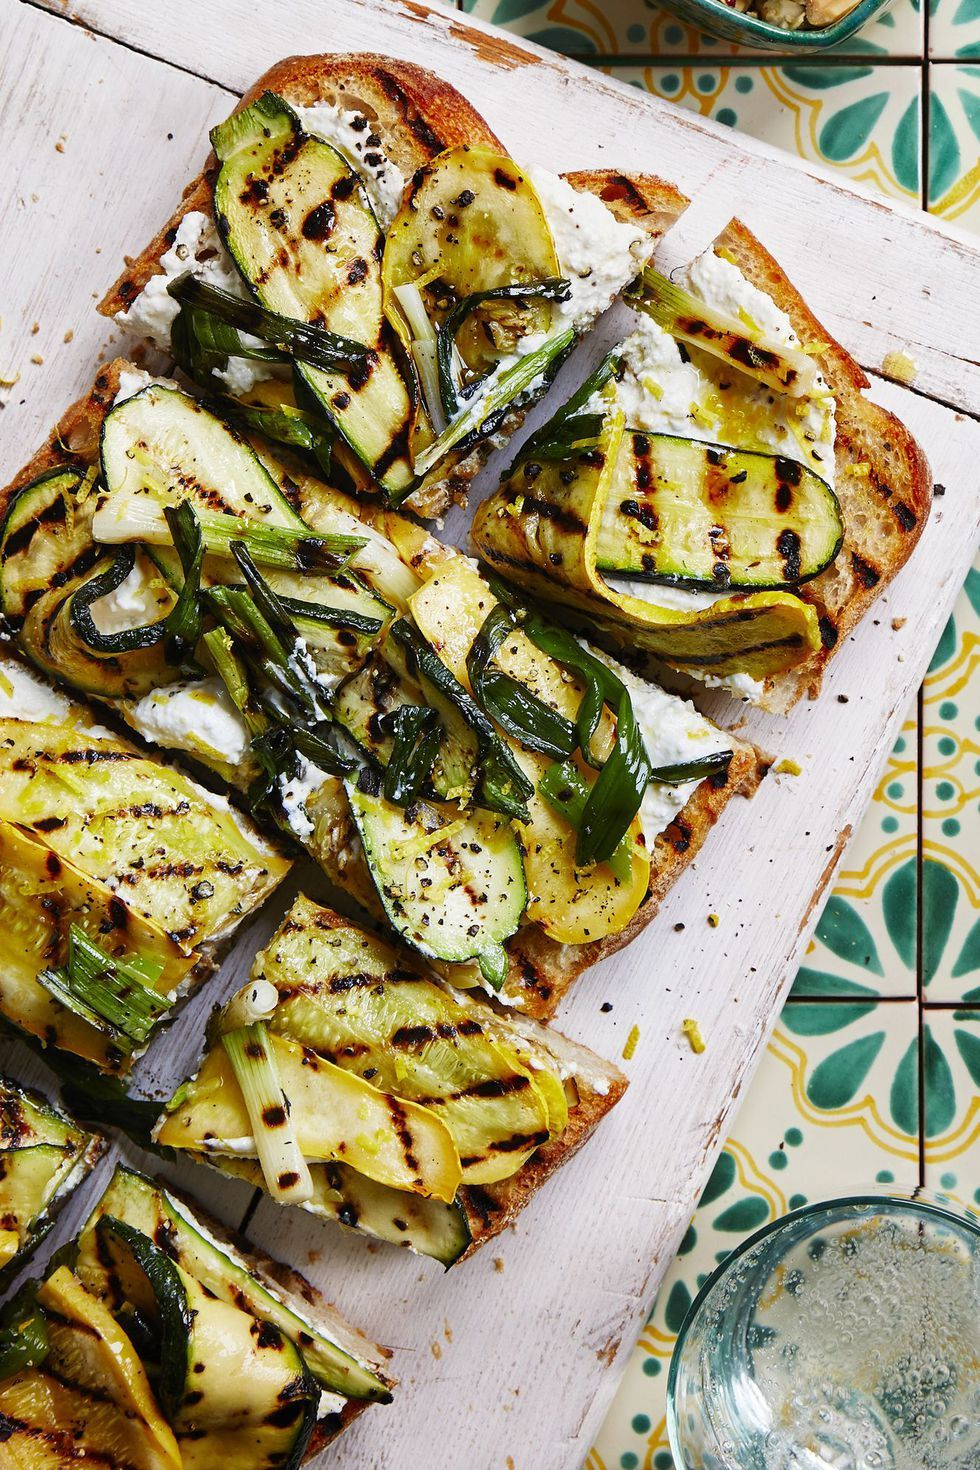 Vegetarian Meals Grilled Squash Garlic Bread